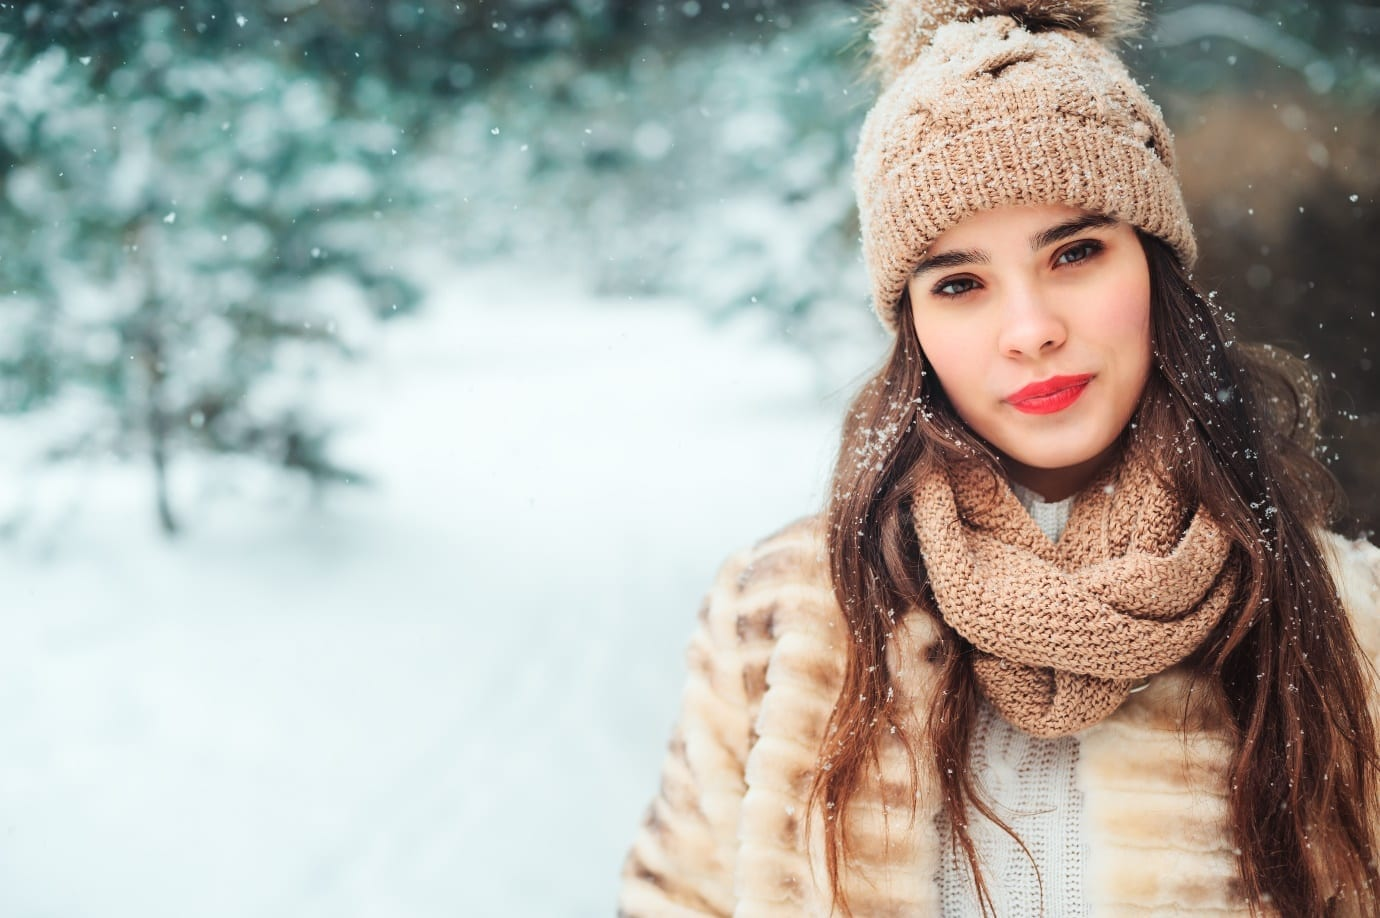 woman with beautiful skin in cold weather